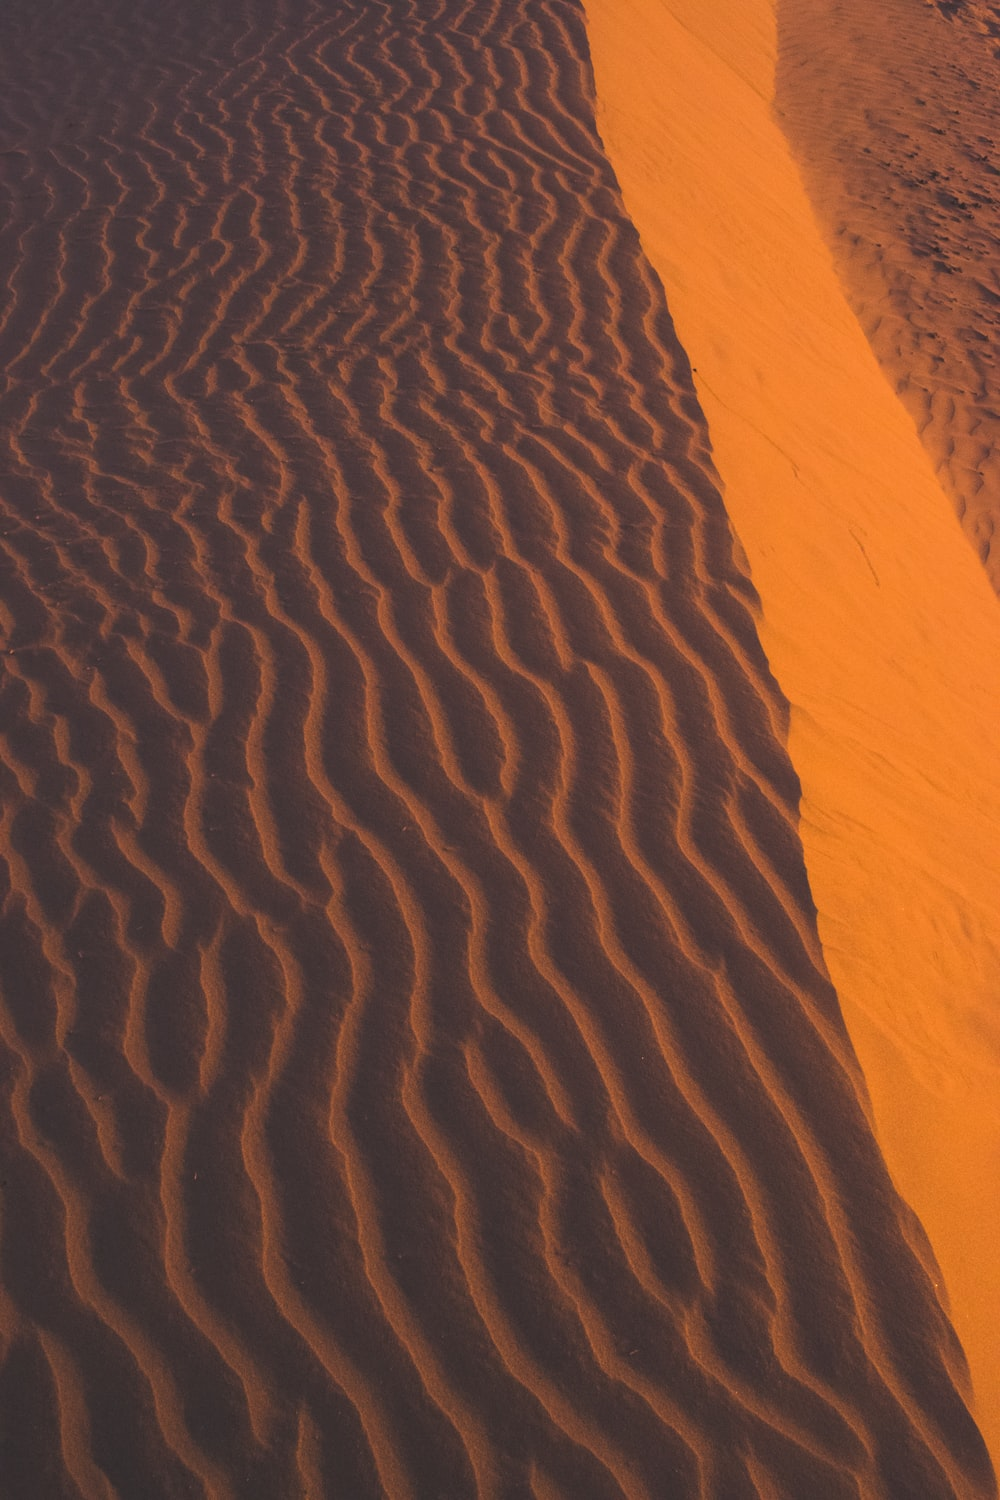 aerial photography of desert